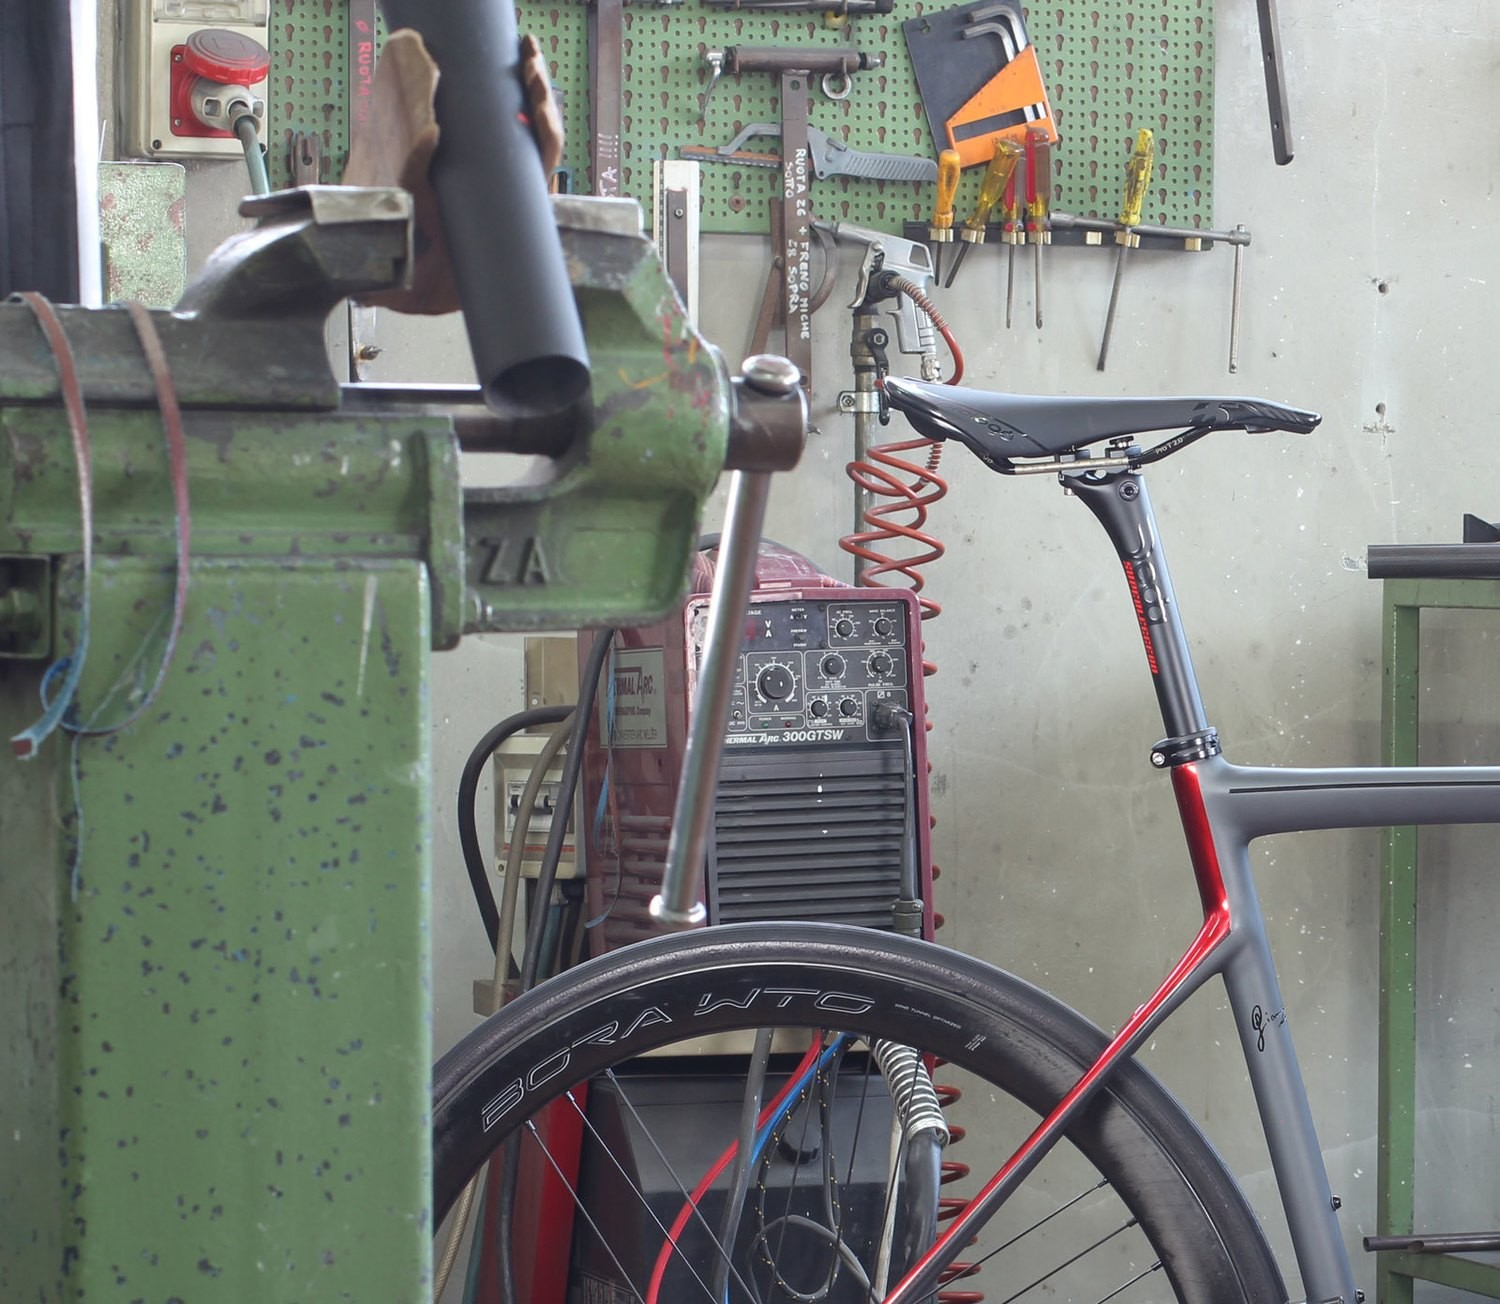 assemble complete bicycle